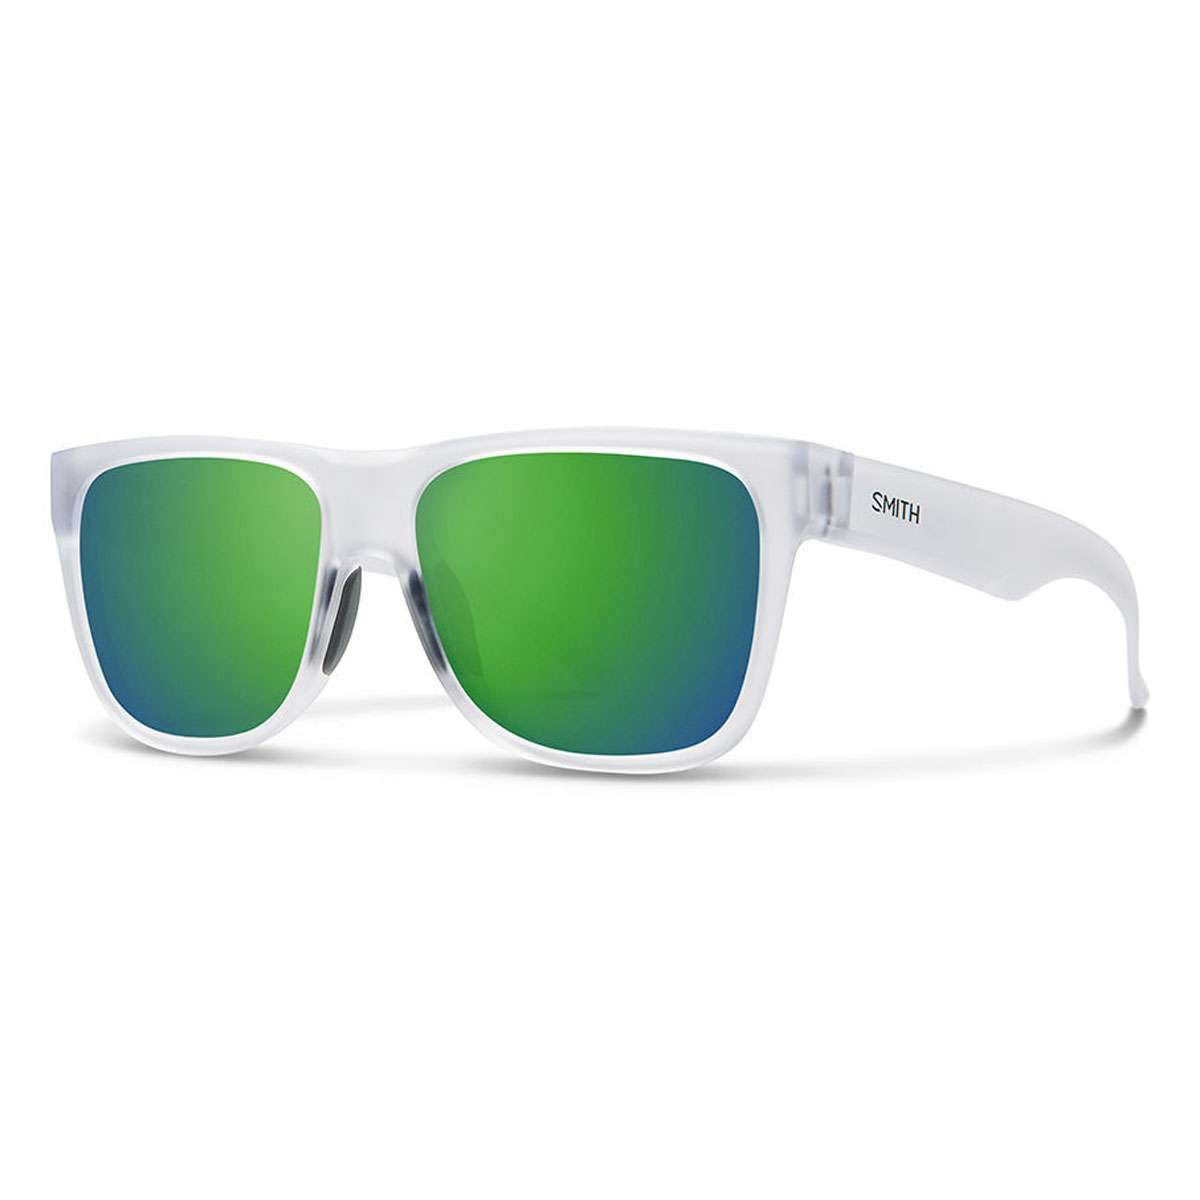 1f8669f69bd Smith Optics 2019 Men s Lowdown 2 Sunglasses - Matte Crystal Frame Green  Mirror Lens - 2009412M456Z9